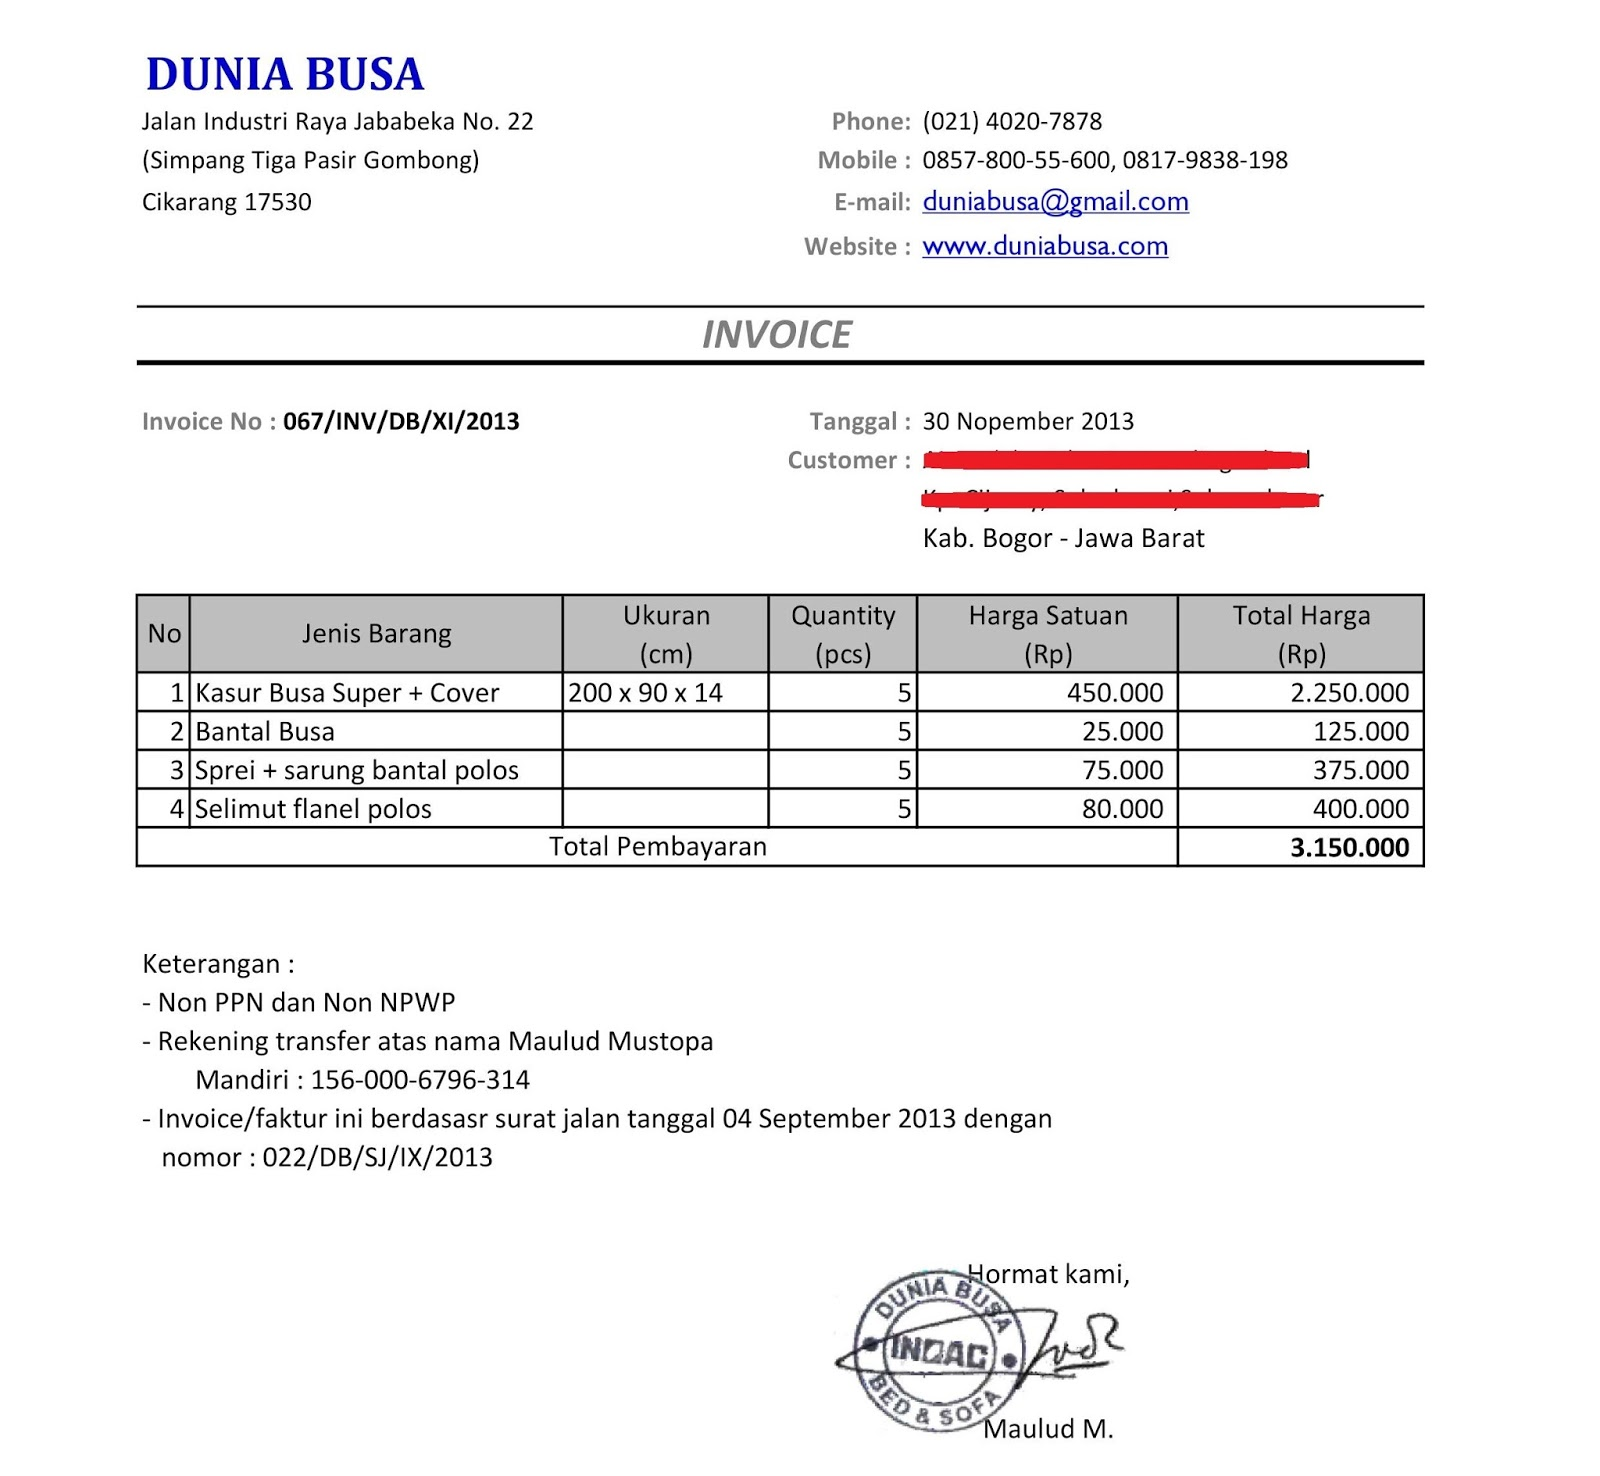 Usdgus  Remarkable Free Invoice Online  Create Invoice Online  Invoice Template  With Licious Contoh Format Invoice Atau Surat Tagihan  Brankas Arsip  Free Invoice Online With Attractive On Line Invoice Also Invoice Payable In Addition Free Printable Blank Invoice And Vehicle Invoice Prices As Well As Invoice Factoring Service Additionally Standard Invoice Terms From Sklepco With Usdgus  Licious Free Invoice Online  Create Invoice Online  Invoice Template  With Attractive Contoh Format Invoice Atau Surat Tagihan  Brankas Arsip  Free Invoice Online And Remarkable On Line Invoice Also Invoice Payable In Addition Free Printable Blank Invoice From Sklepco